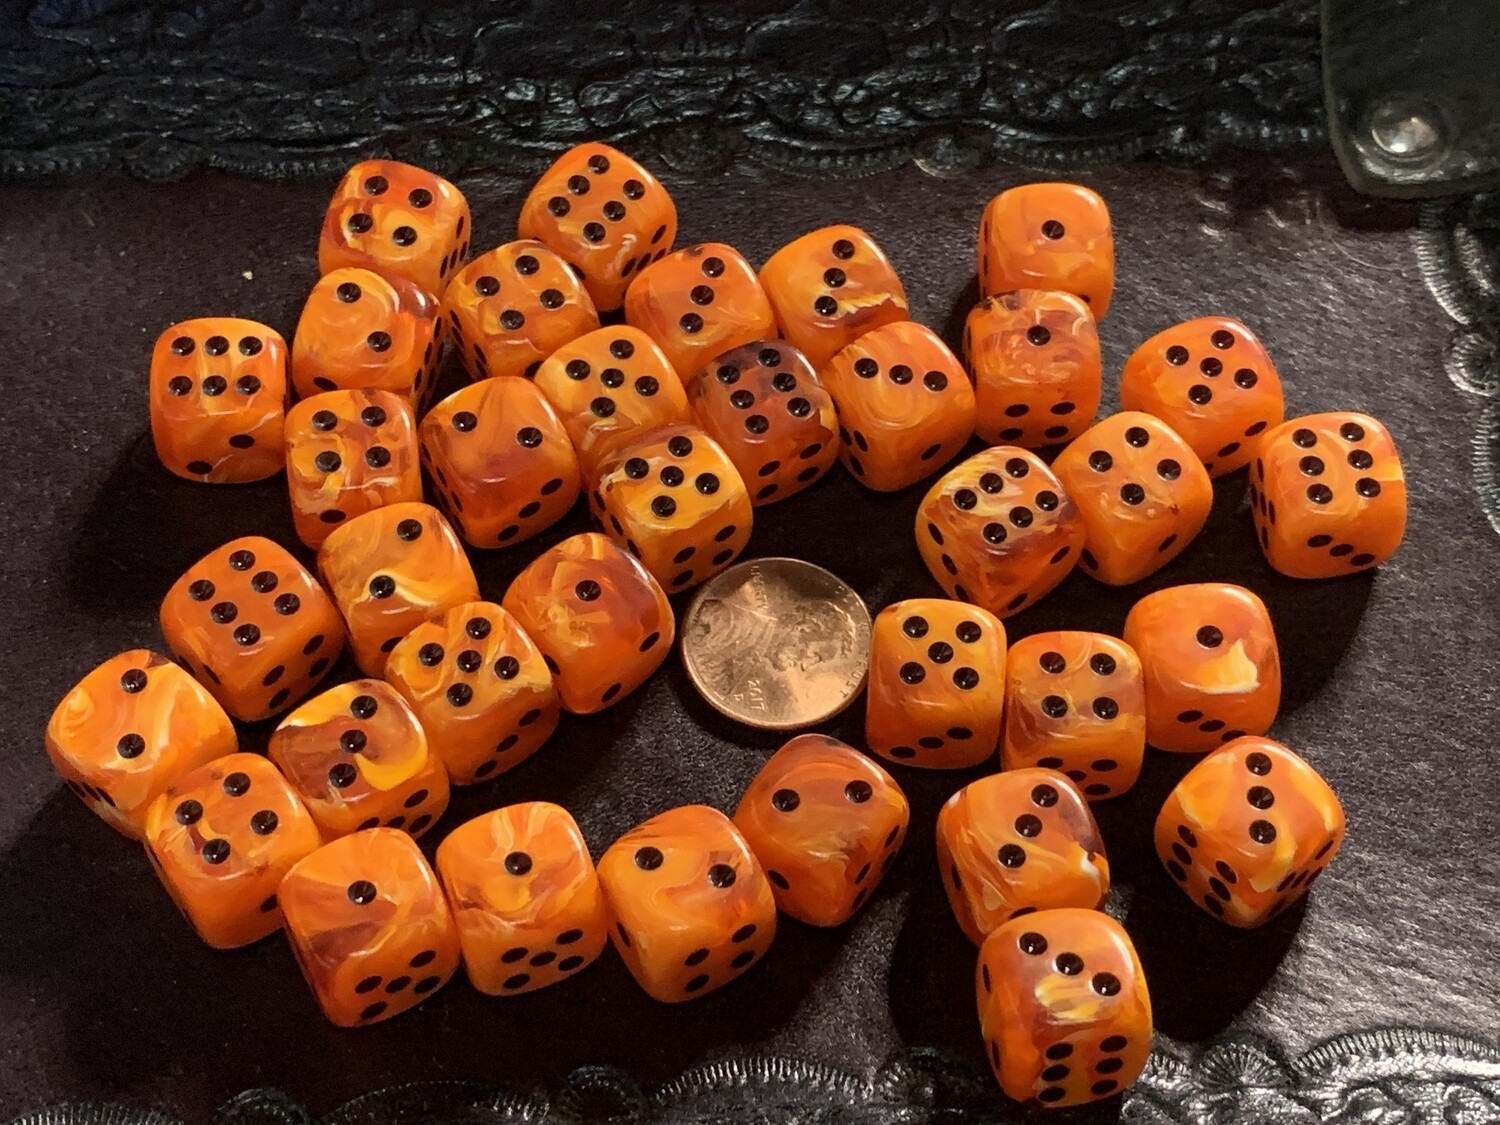 12mm Set of 36 D6 Dice - Chessex Vortex Orange with Black RPG Tabletop Gaming